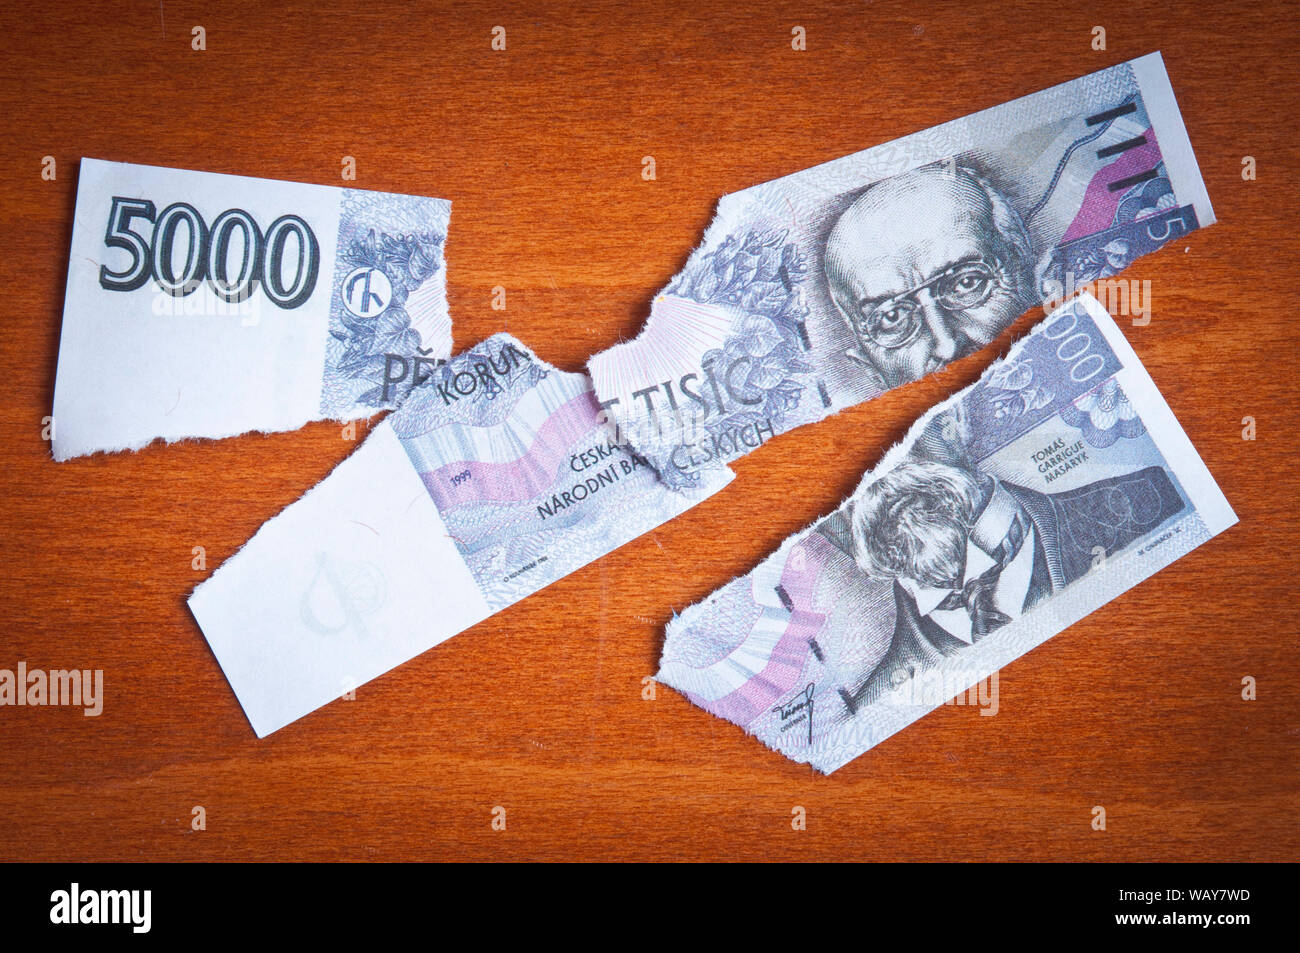 concept for Czech currency devaluation or economic crisis Stock Photo